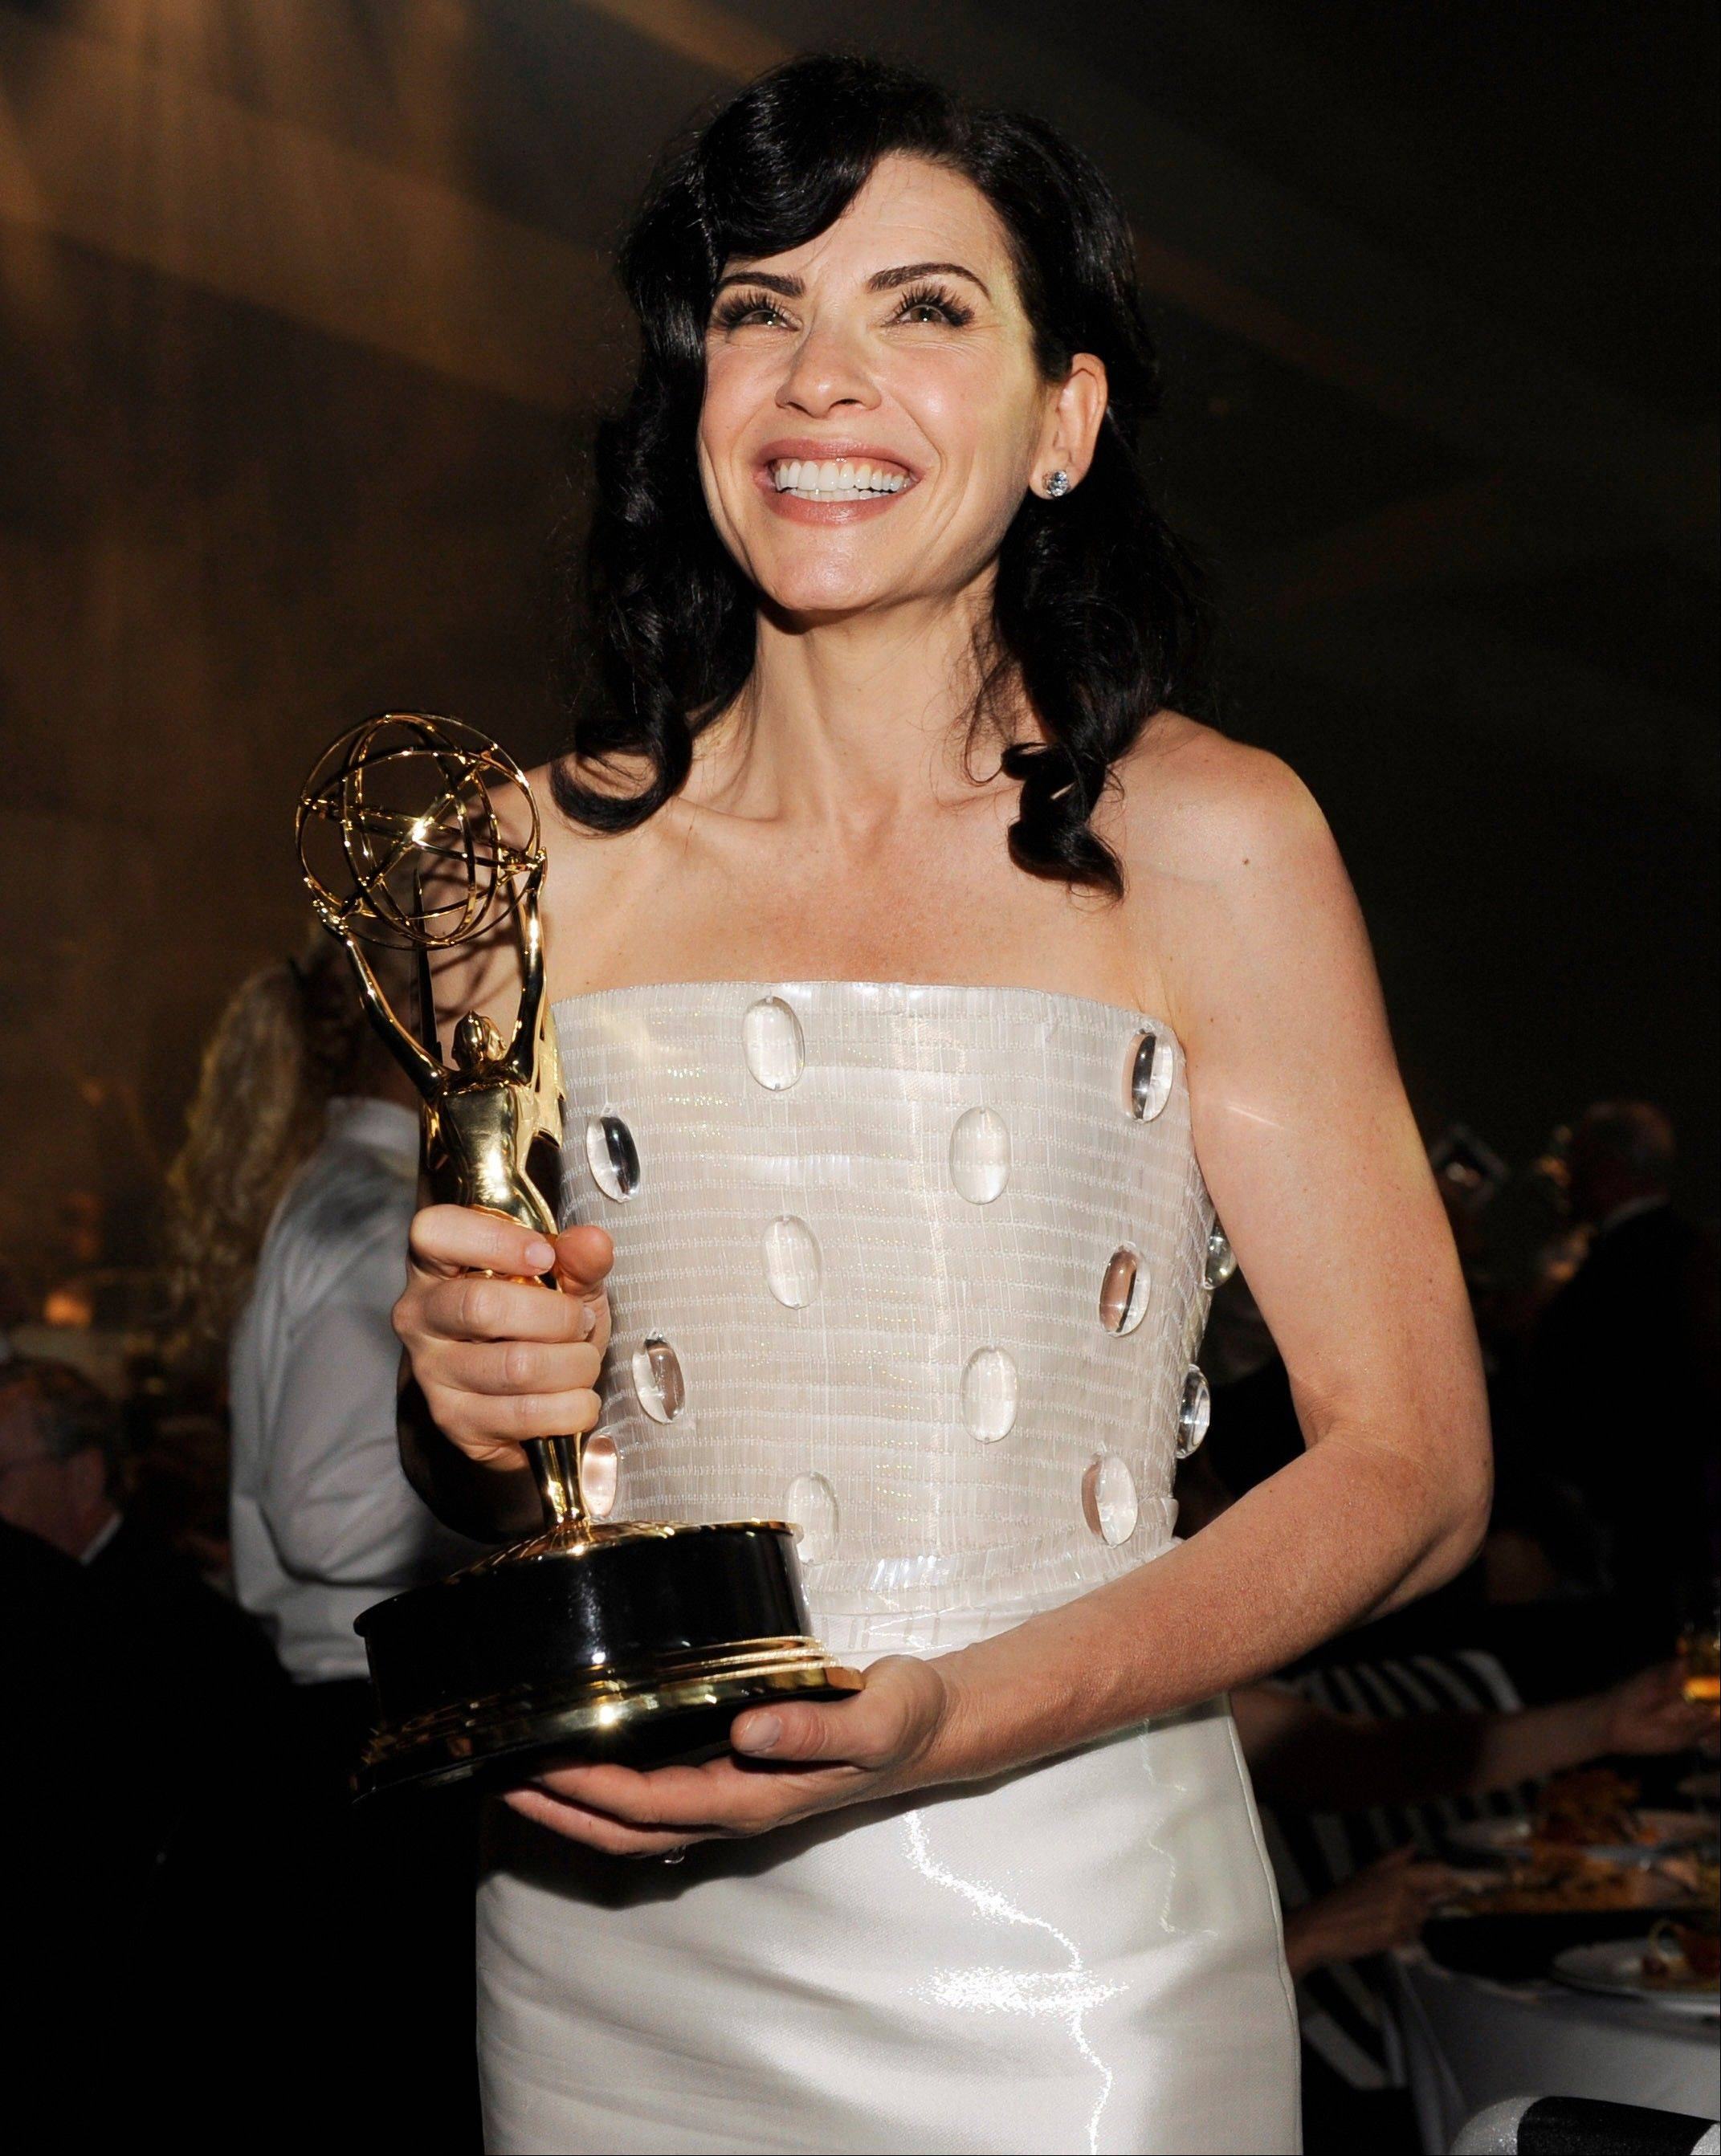 """The Good Wife"" cast member Julianna Margulies enjoys her Emmy win for best lead actress in a drama series."